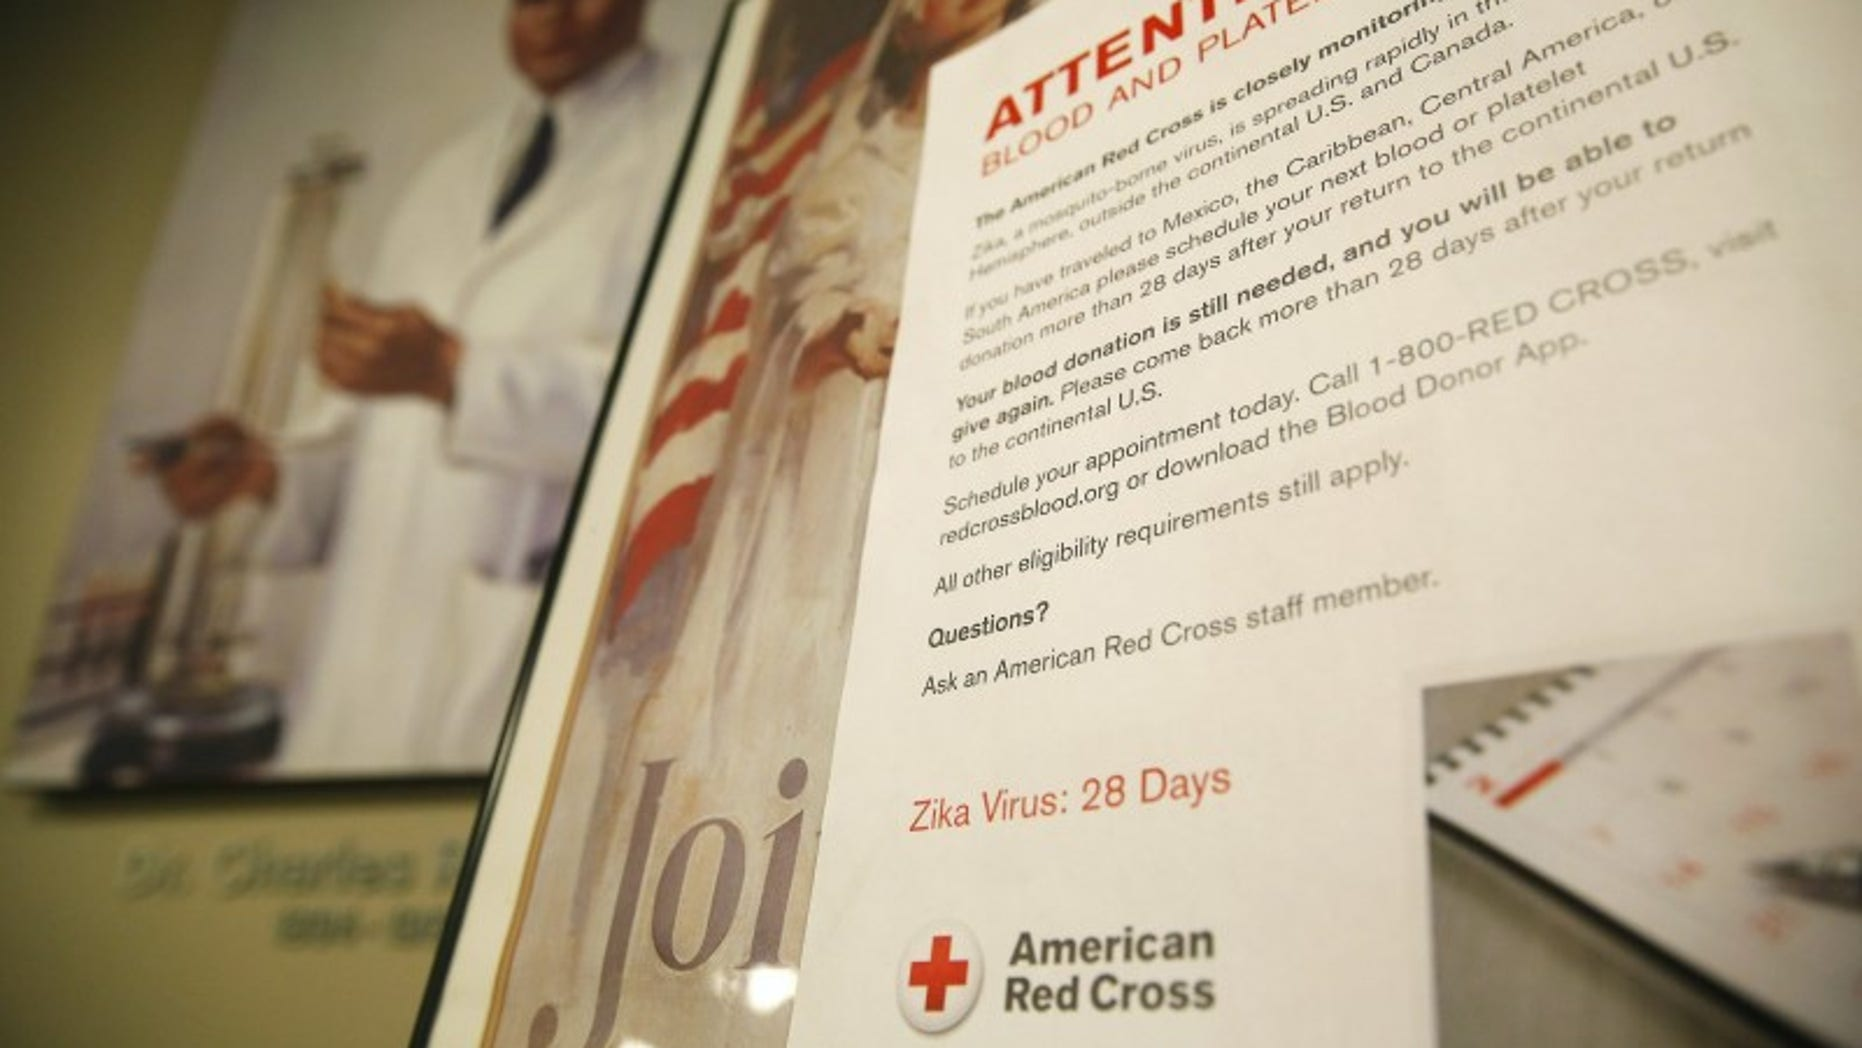 Sign explaining the parameters concerning the Zika virus and blood donations is seen at the American Red Cross Charles Drew Donation Center in Washington